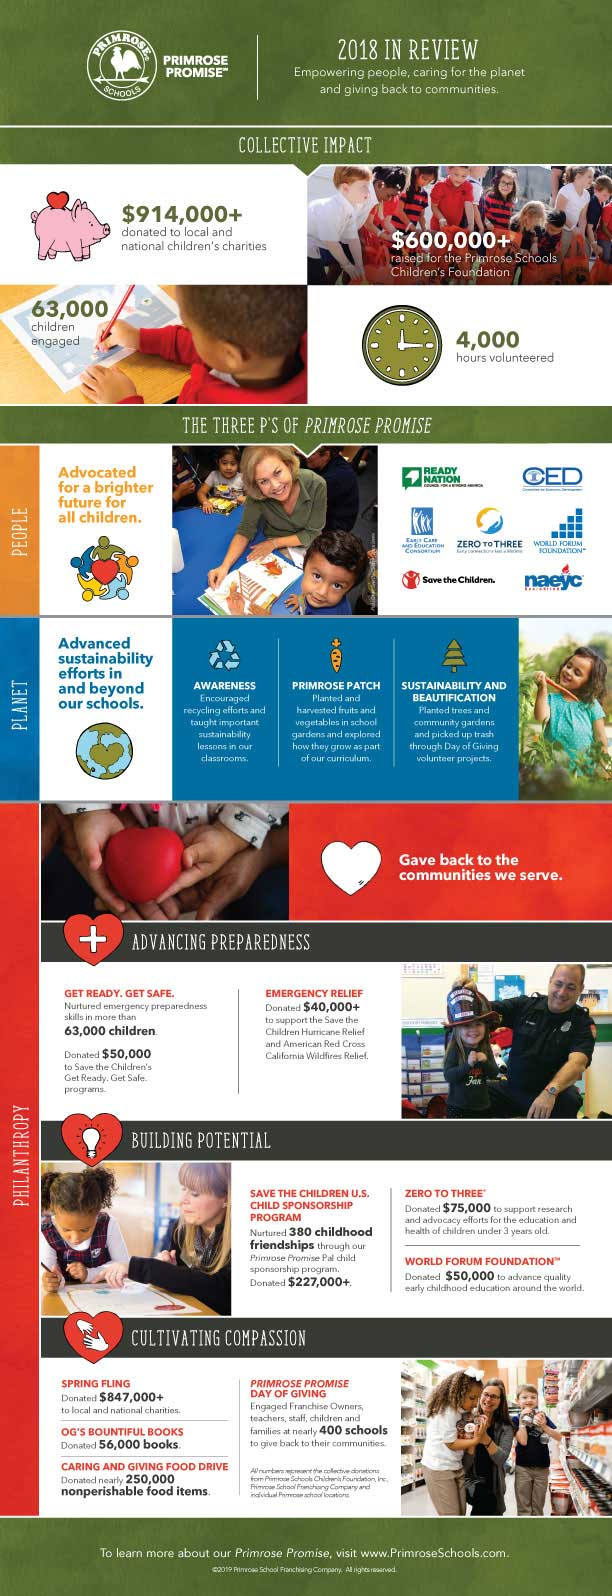 Through the Primrose PromiseSM CSR program, more than 63,000 Primrose children and their families engaged in giving efforts in 2018, generating more than $914,000 for local and national children's charities.